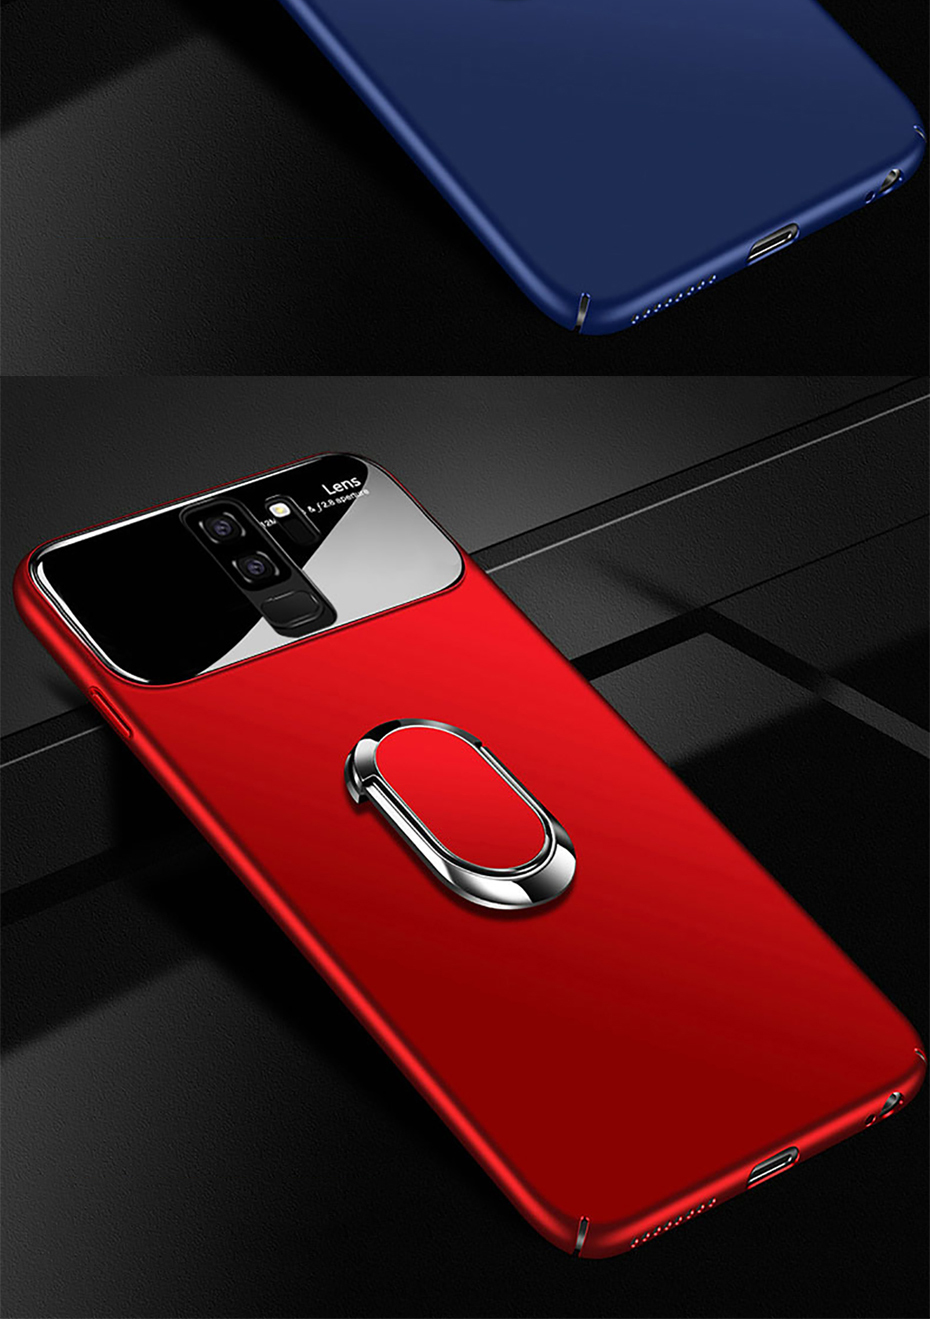 Bakeey 360º Rotation Ring Grip Kickstand Tempered Glass Lens Protection PC Protective Case For Samsung Galaxy S9/S9 Plus